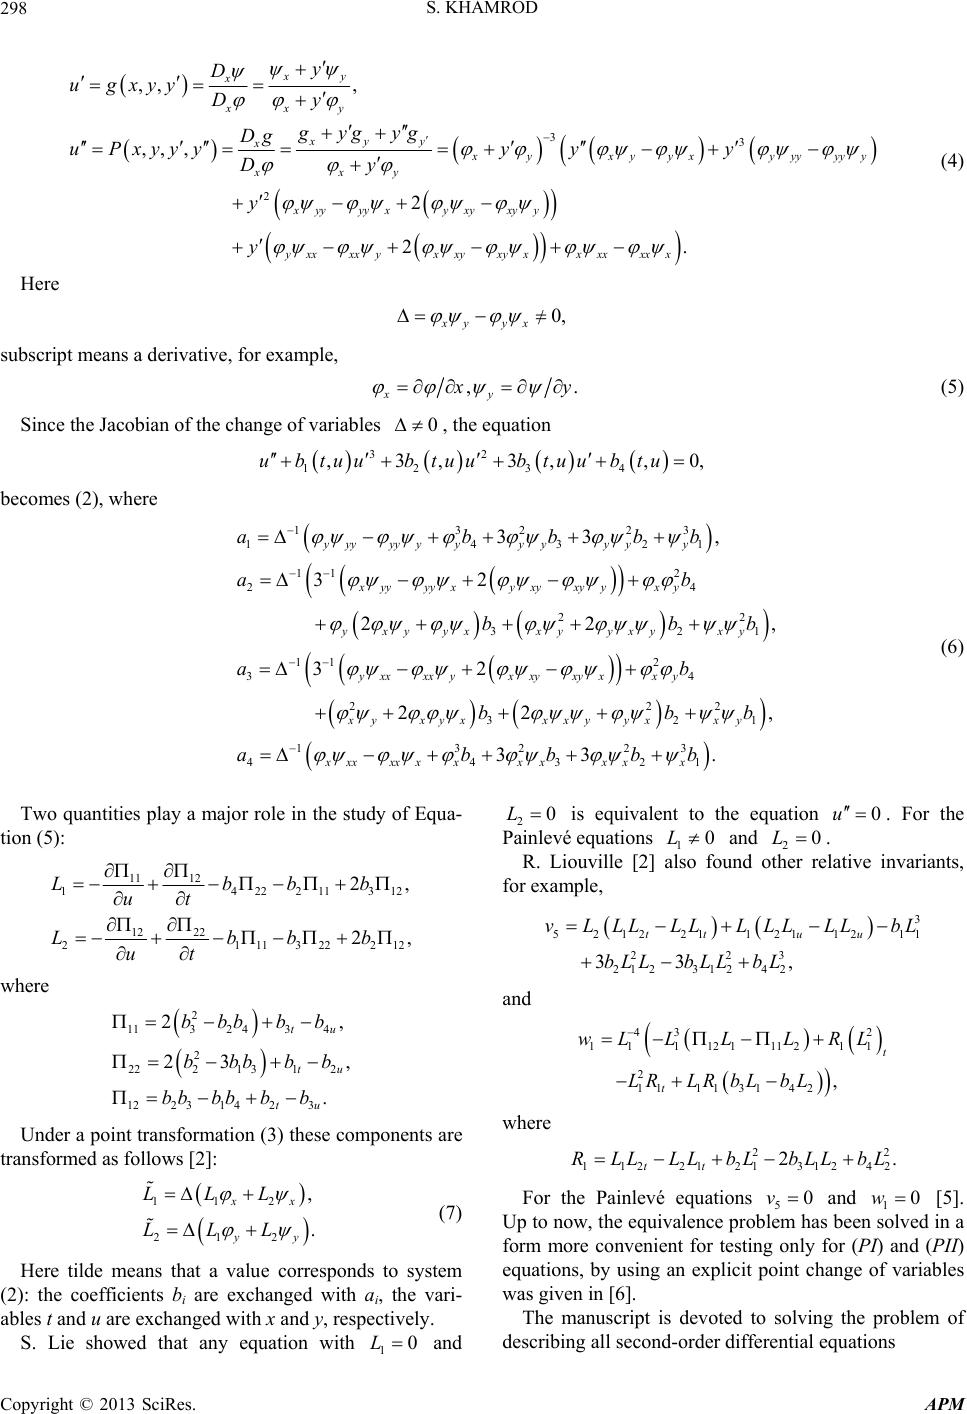 Equivalence Problem Of The Painleve Equations